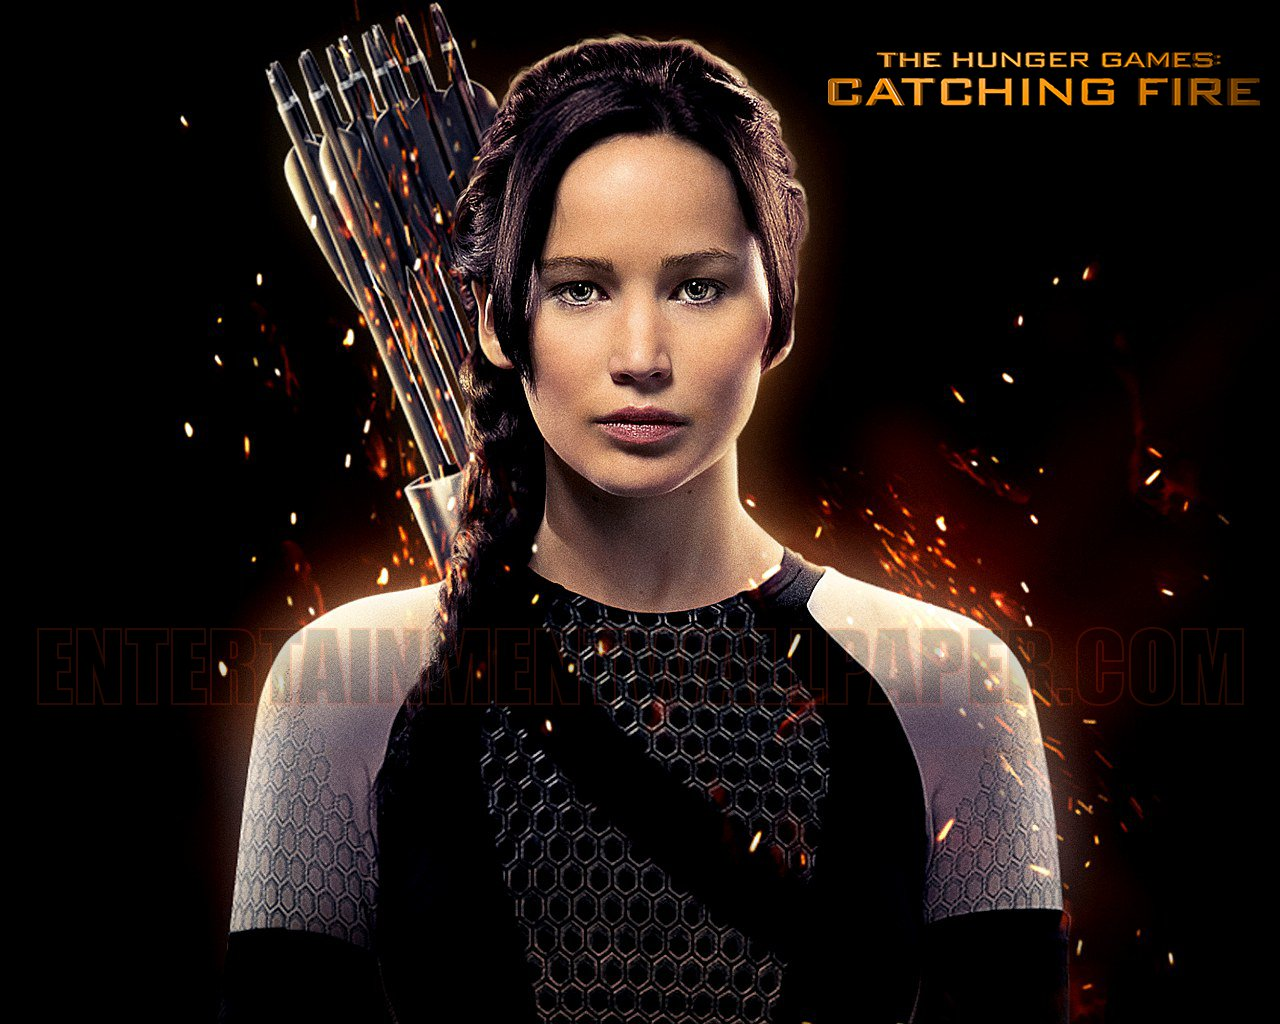 The Hunger Games: Catching Fire Wallpaper - Original size, download now.